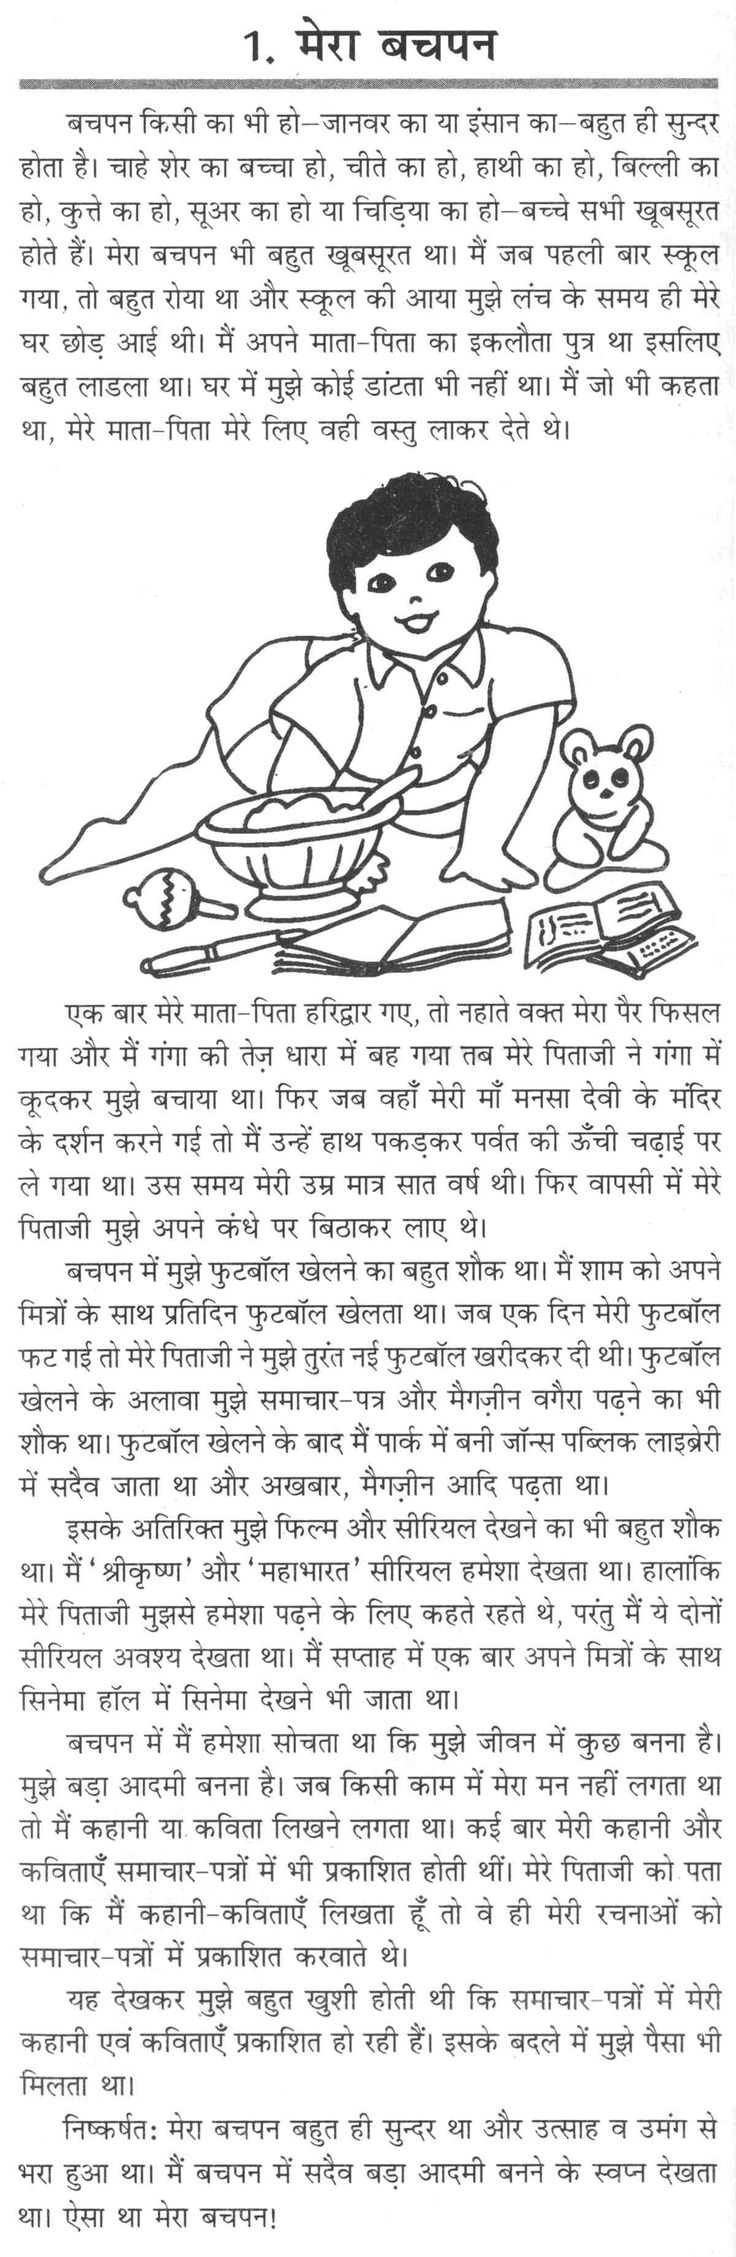 best essay images writing papers academic essay on my childhood in hindi